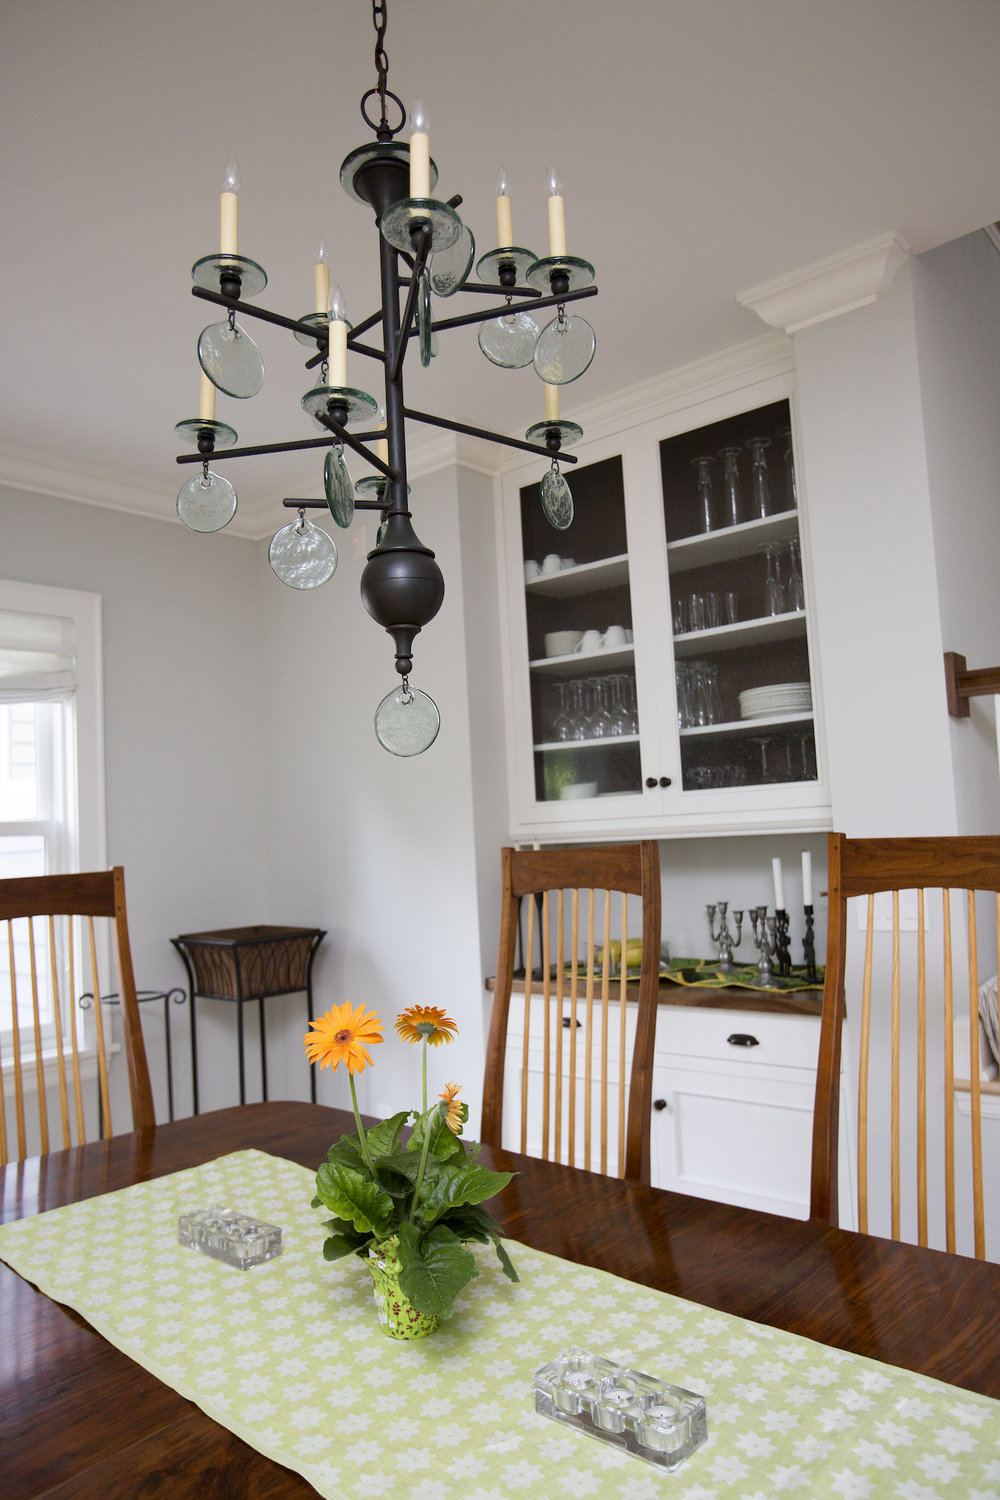 Bright sunny dining room with mid century chandelier